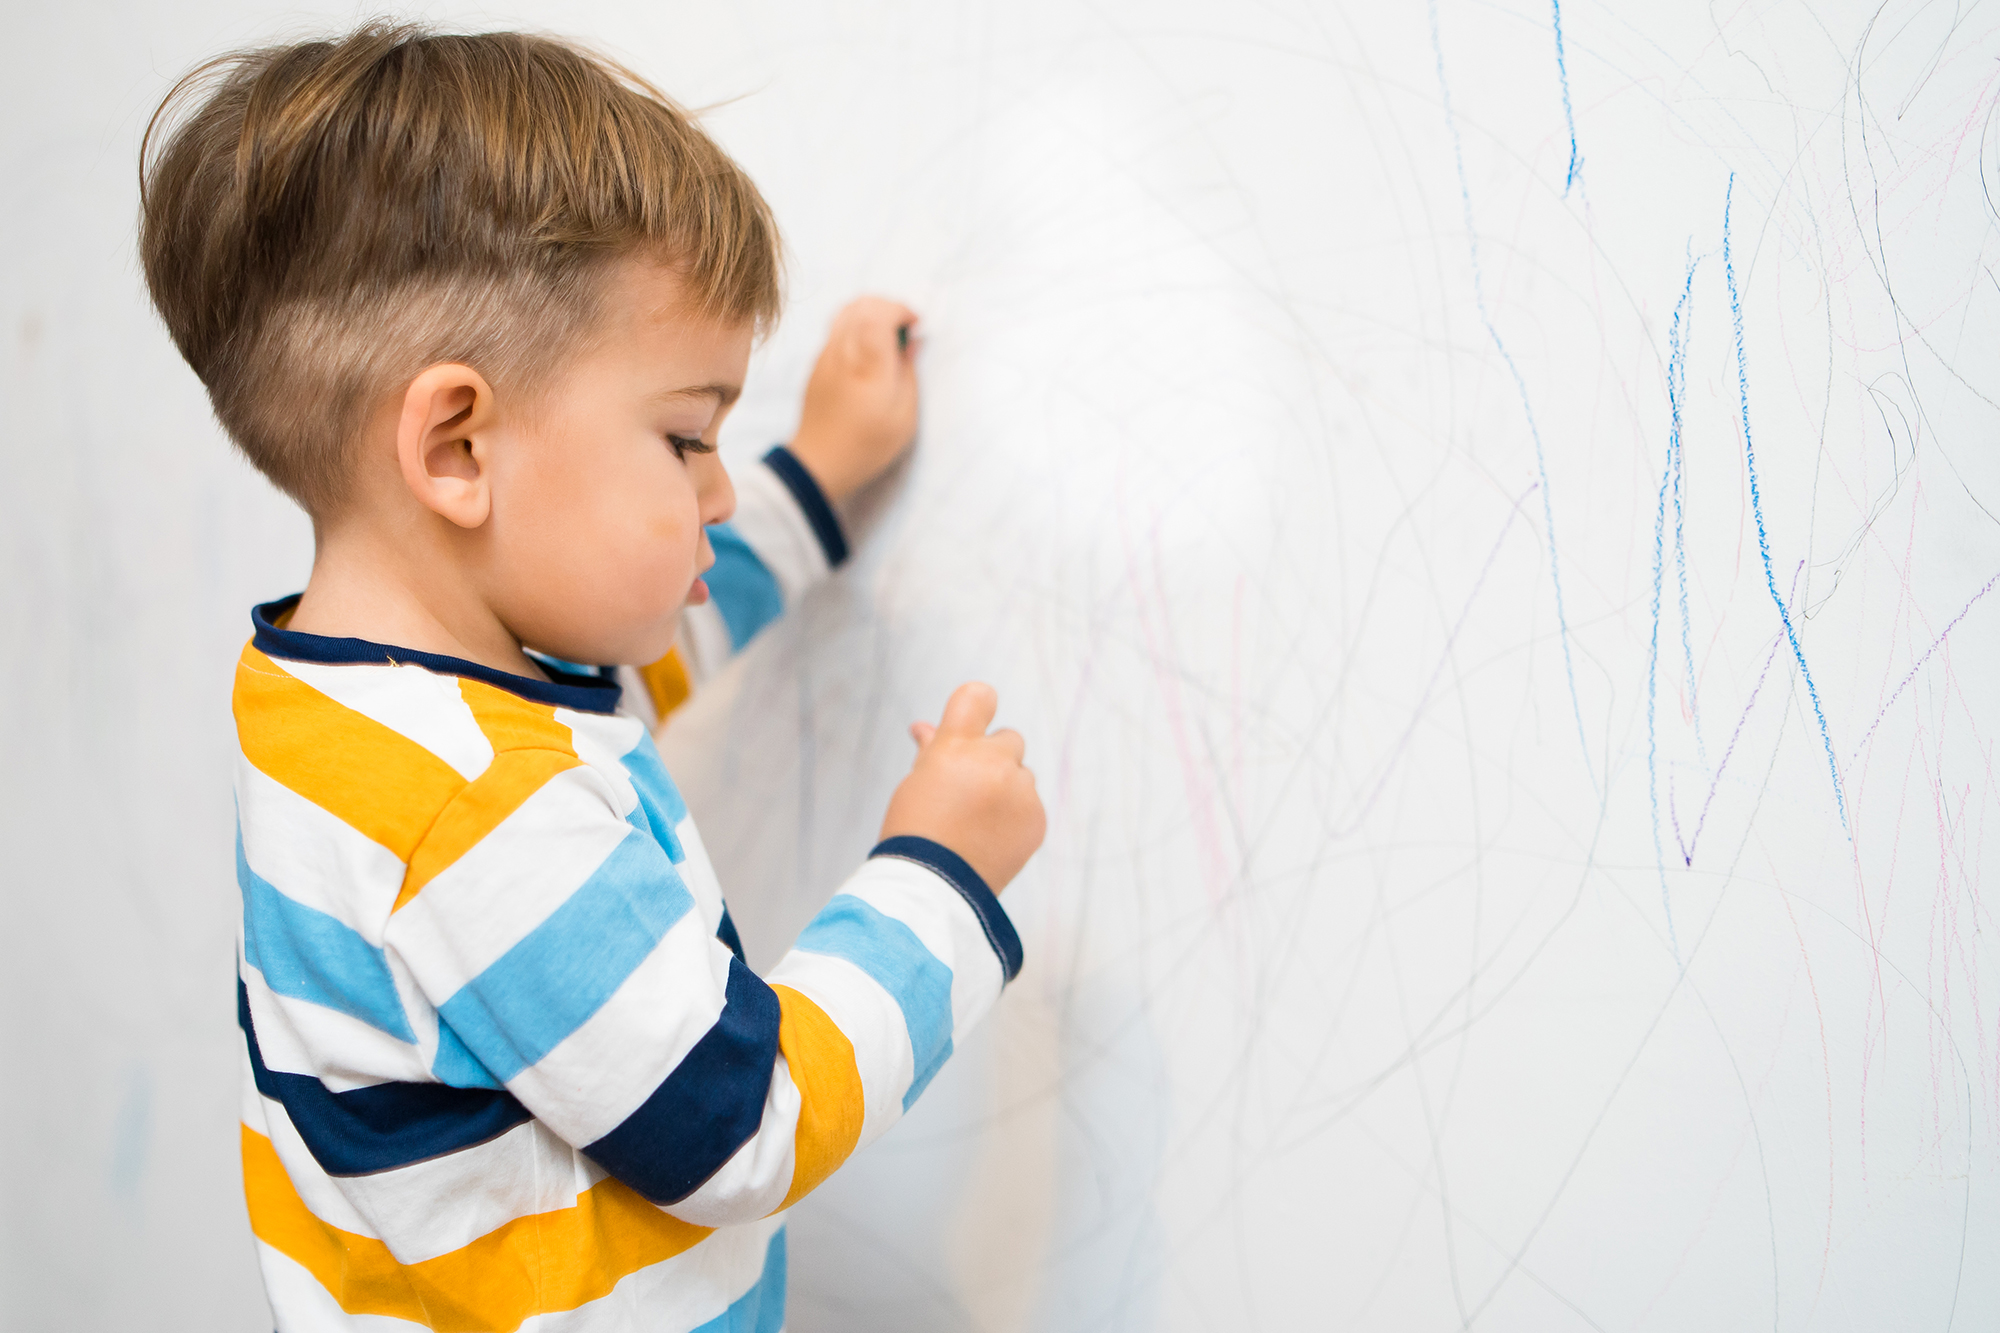 Little Boy Writing on the Wall